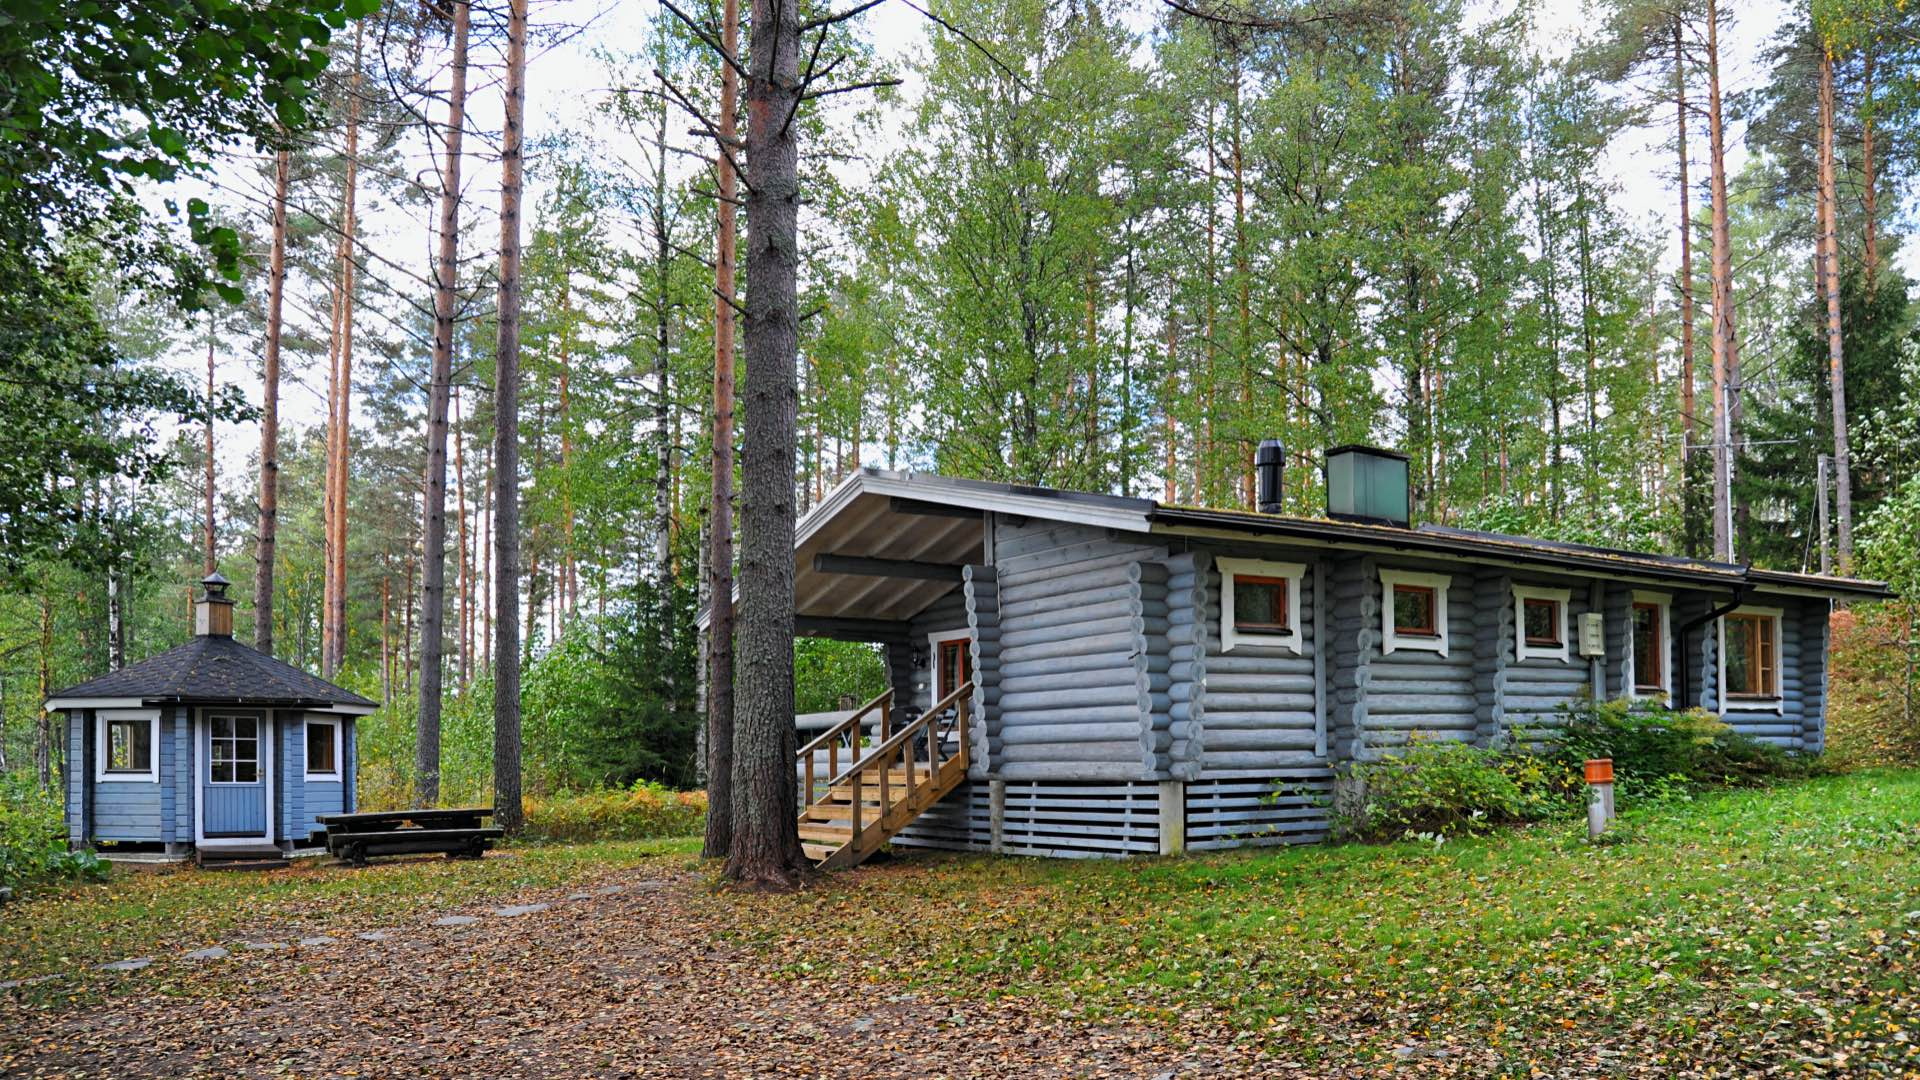 Vasikkahaka is an atmospheric rental cottage for six people on the shore of Lake Härkäjärvi in Mikkeli.